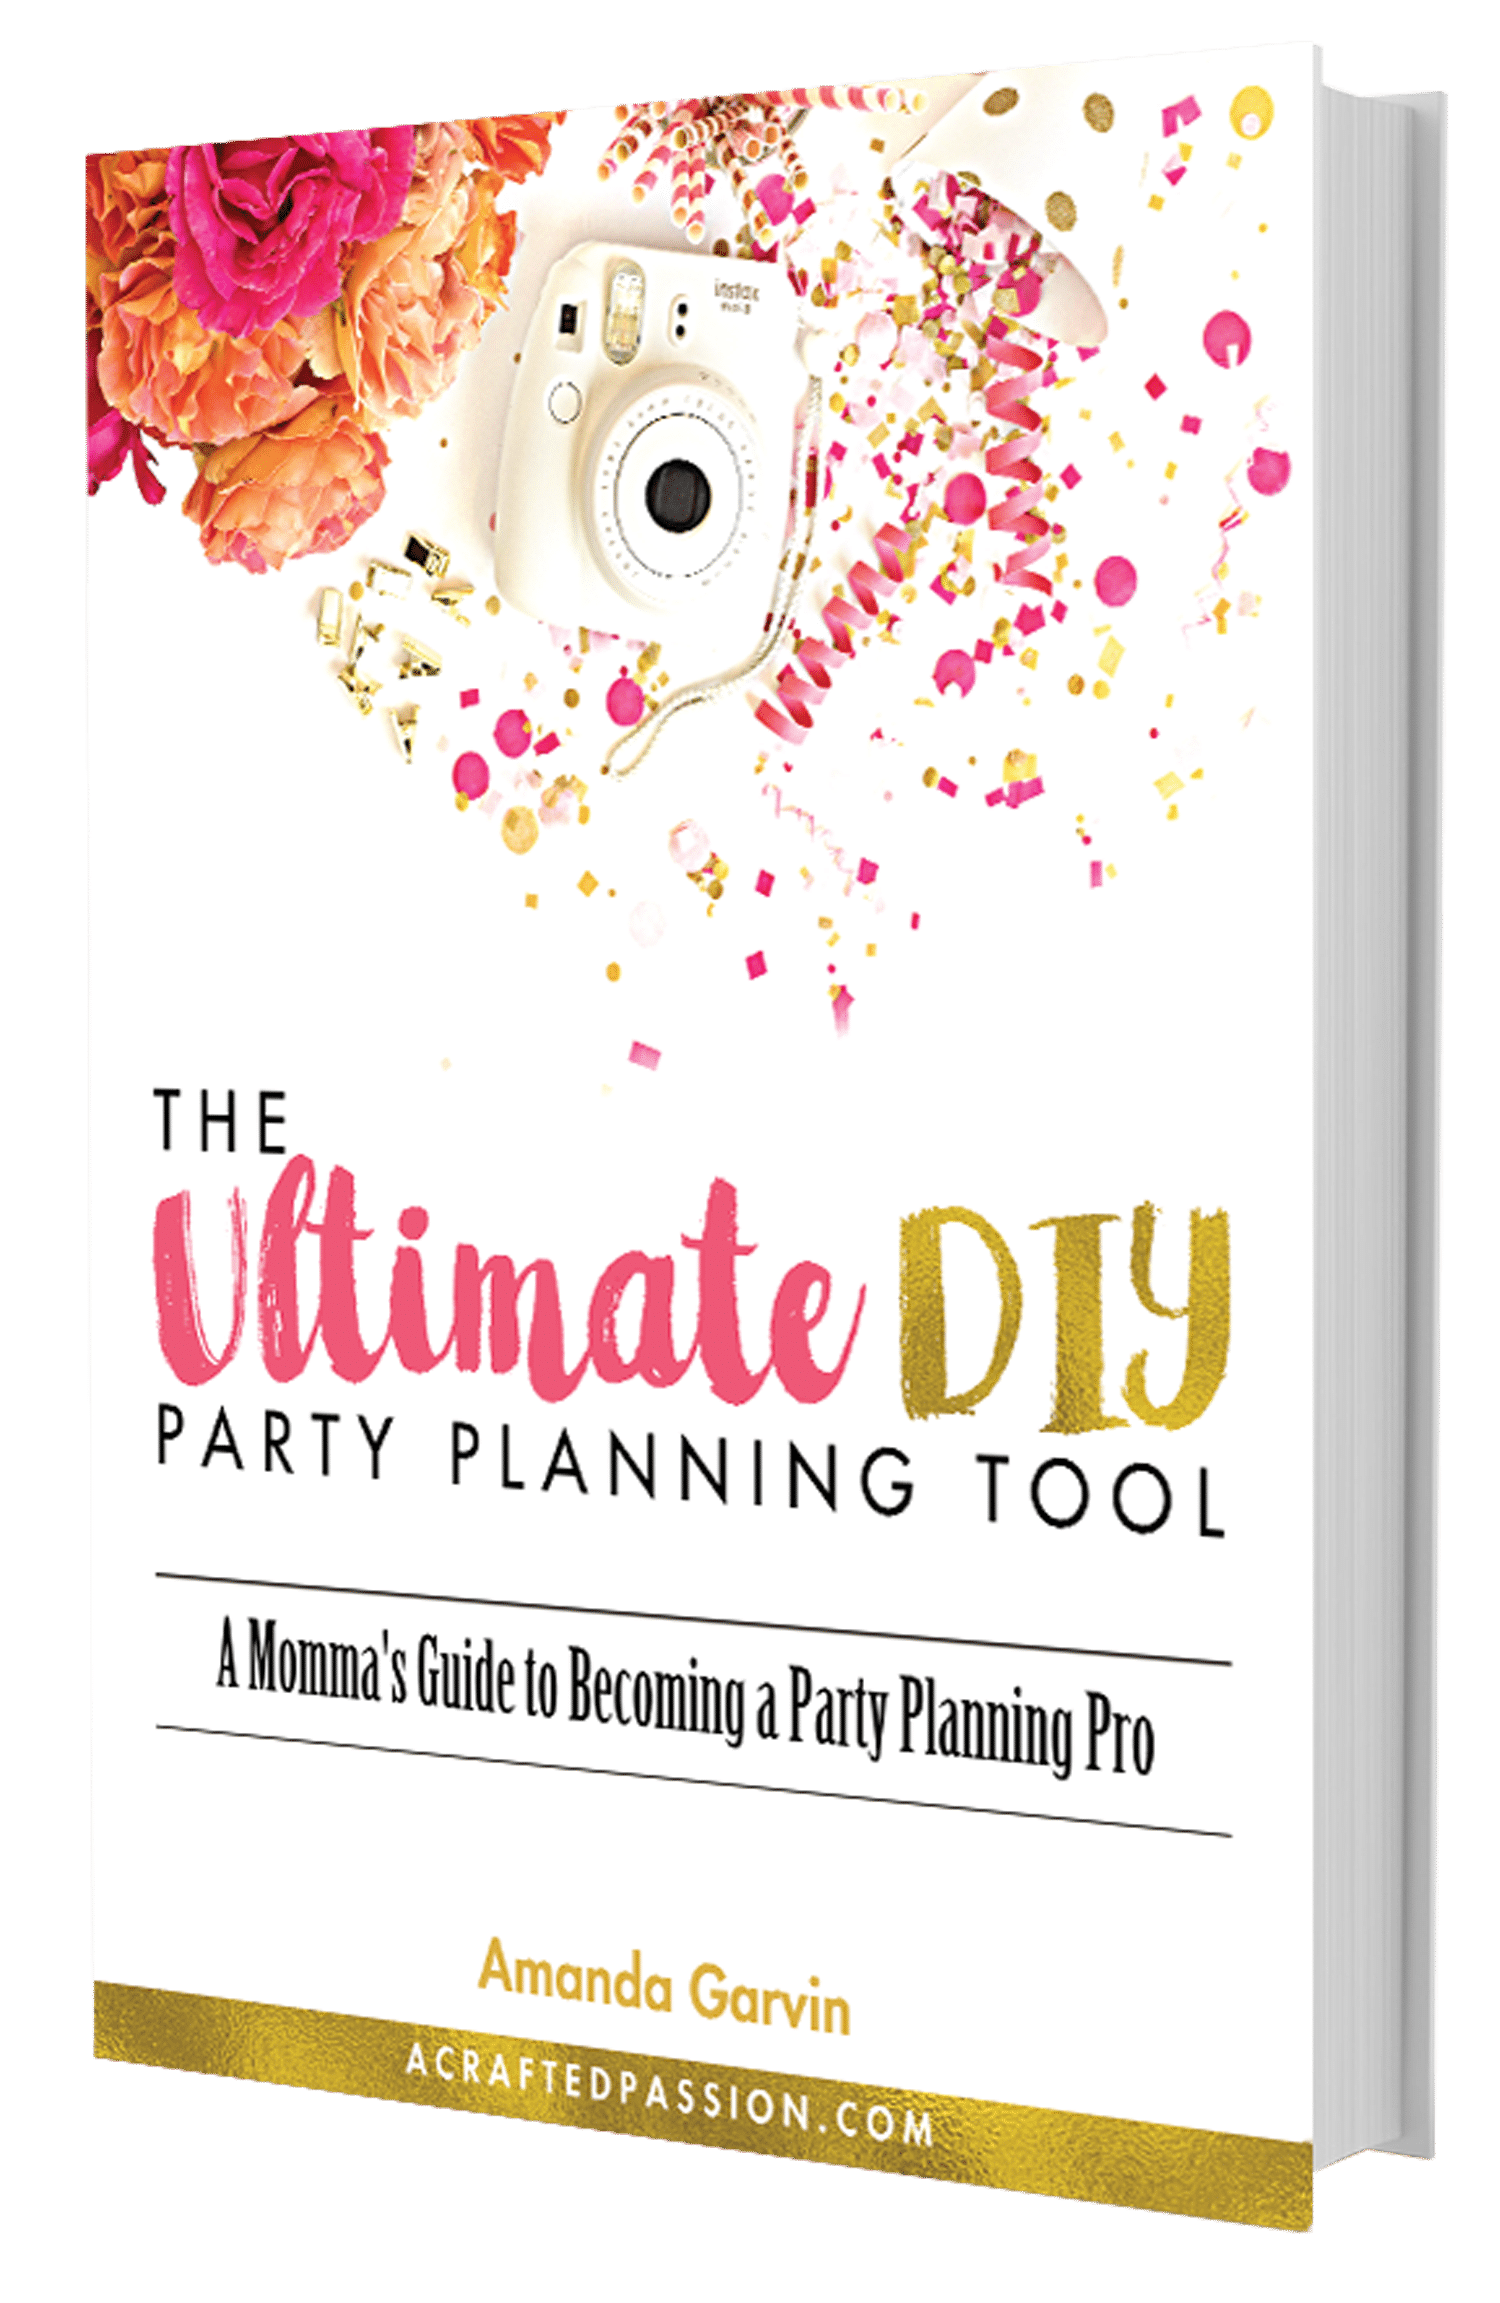 The Ultimate DIY Party Planning Tool